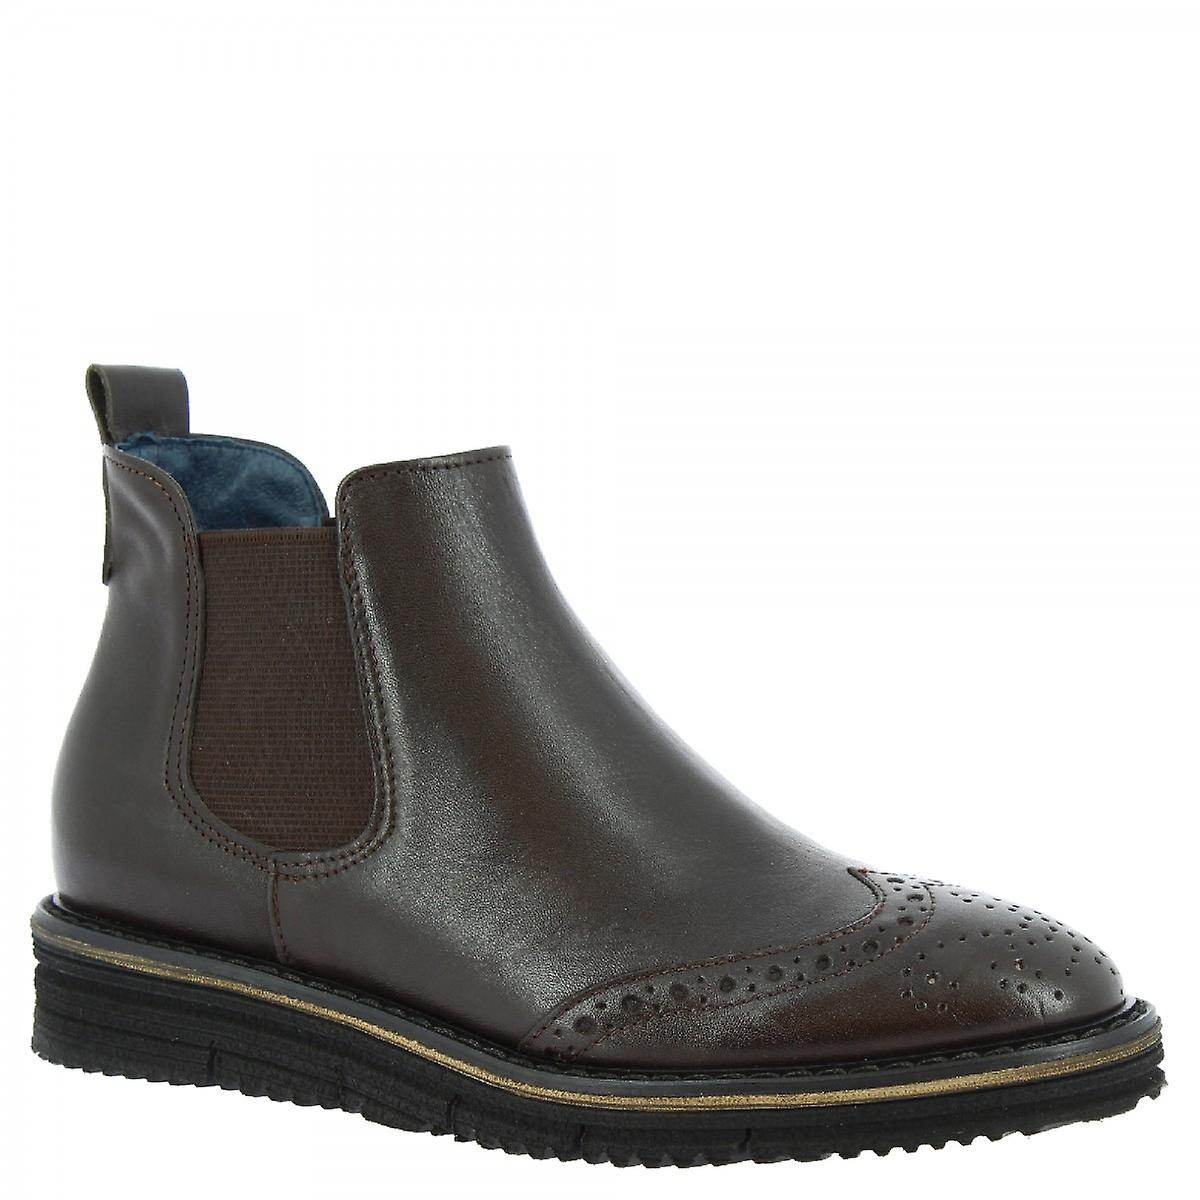 Leonardo Shoes Women's handmade brogues ankle boots in dark brown calf leather UidDL